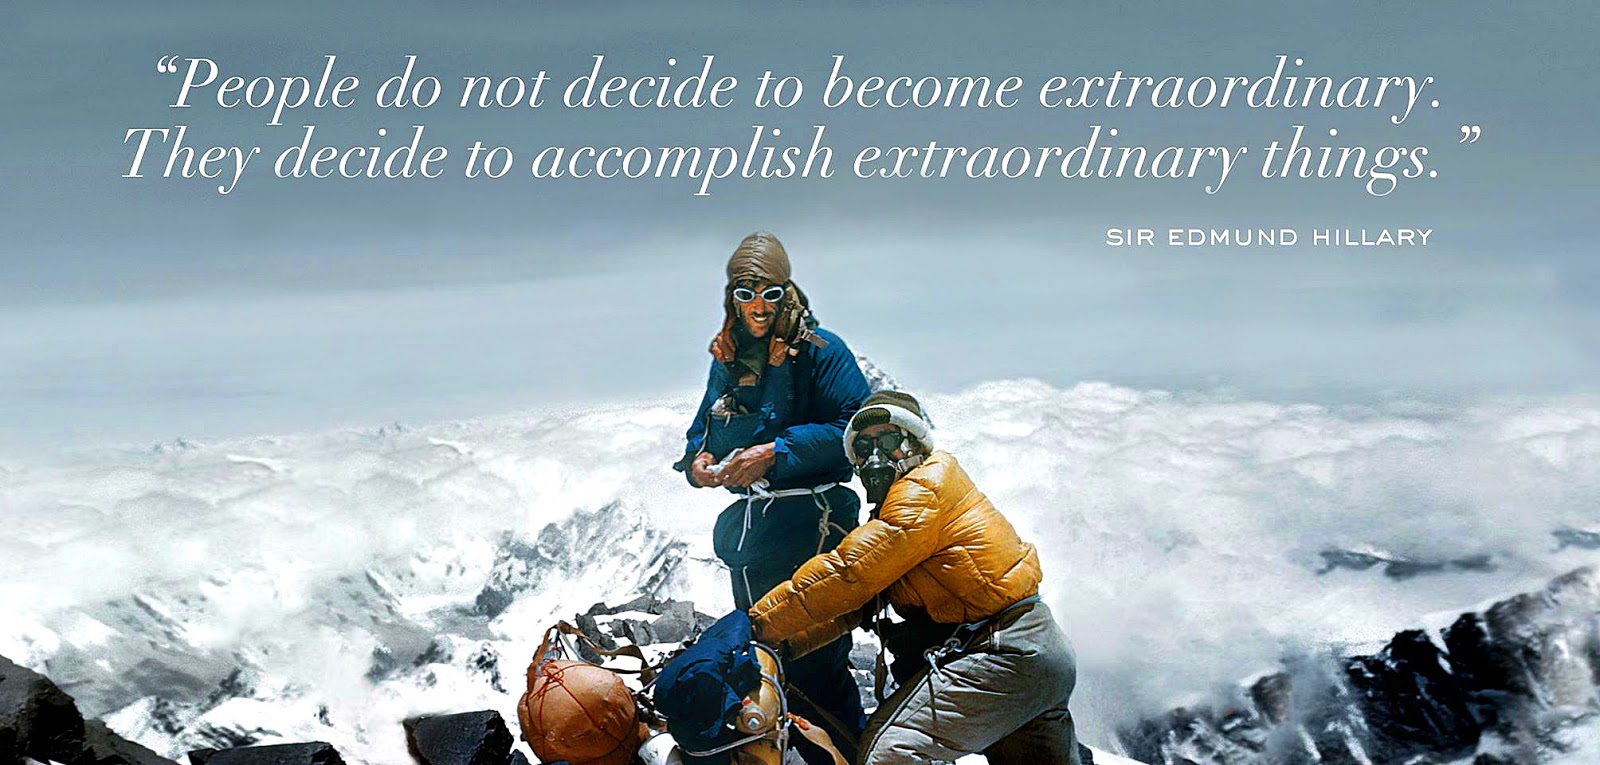 Quotes About Mount Everest: Tenzing Norgay Quotes. QuotesGram